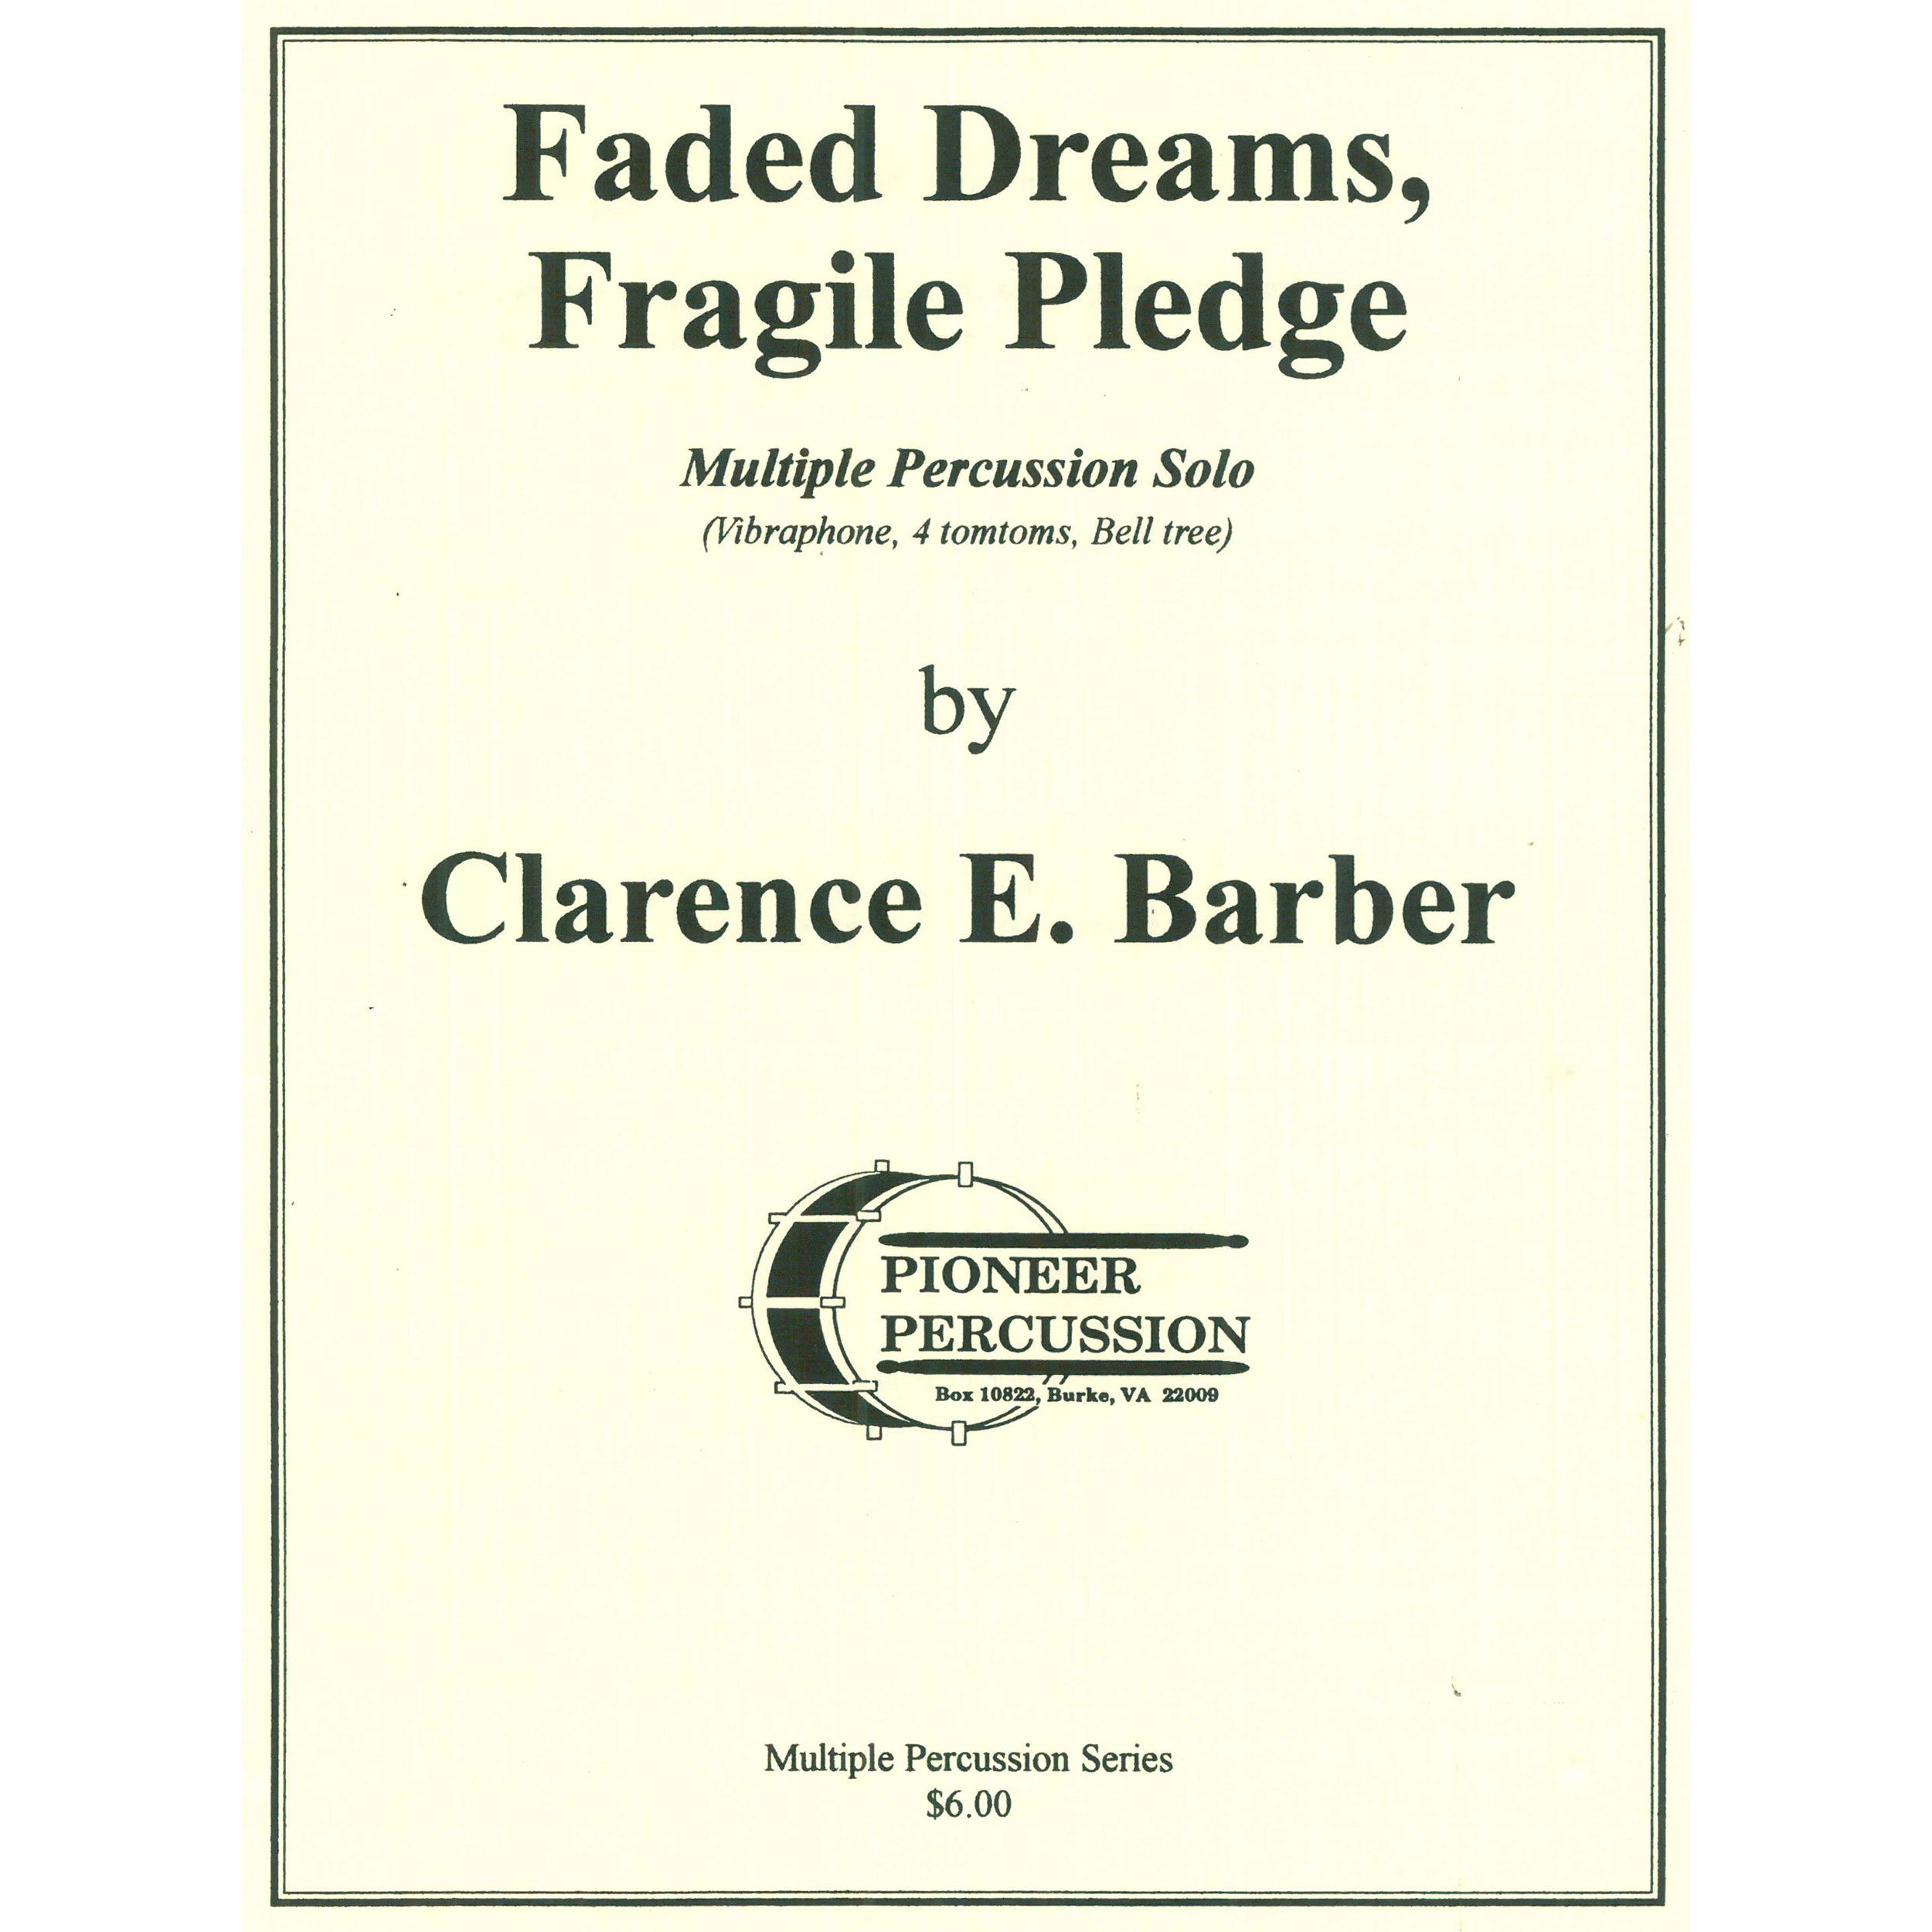 Faded Dreams, Fragile Pledge by Clarence E. Barber